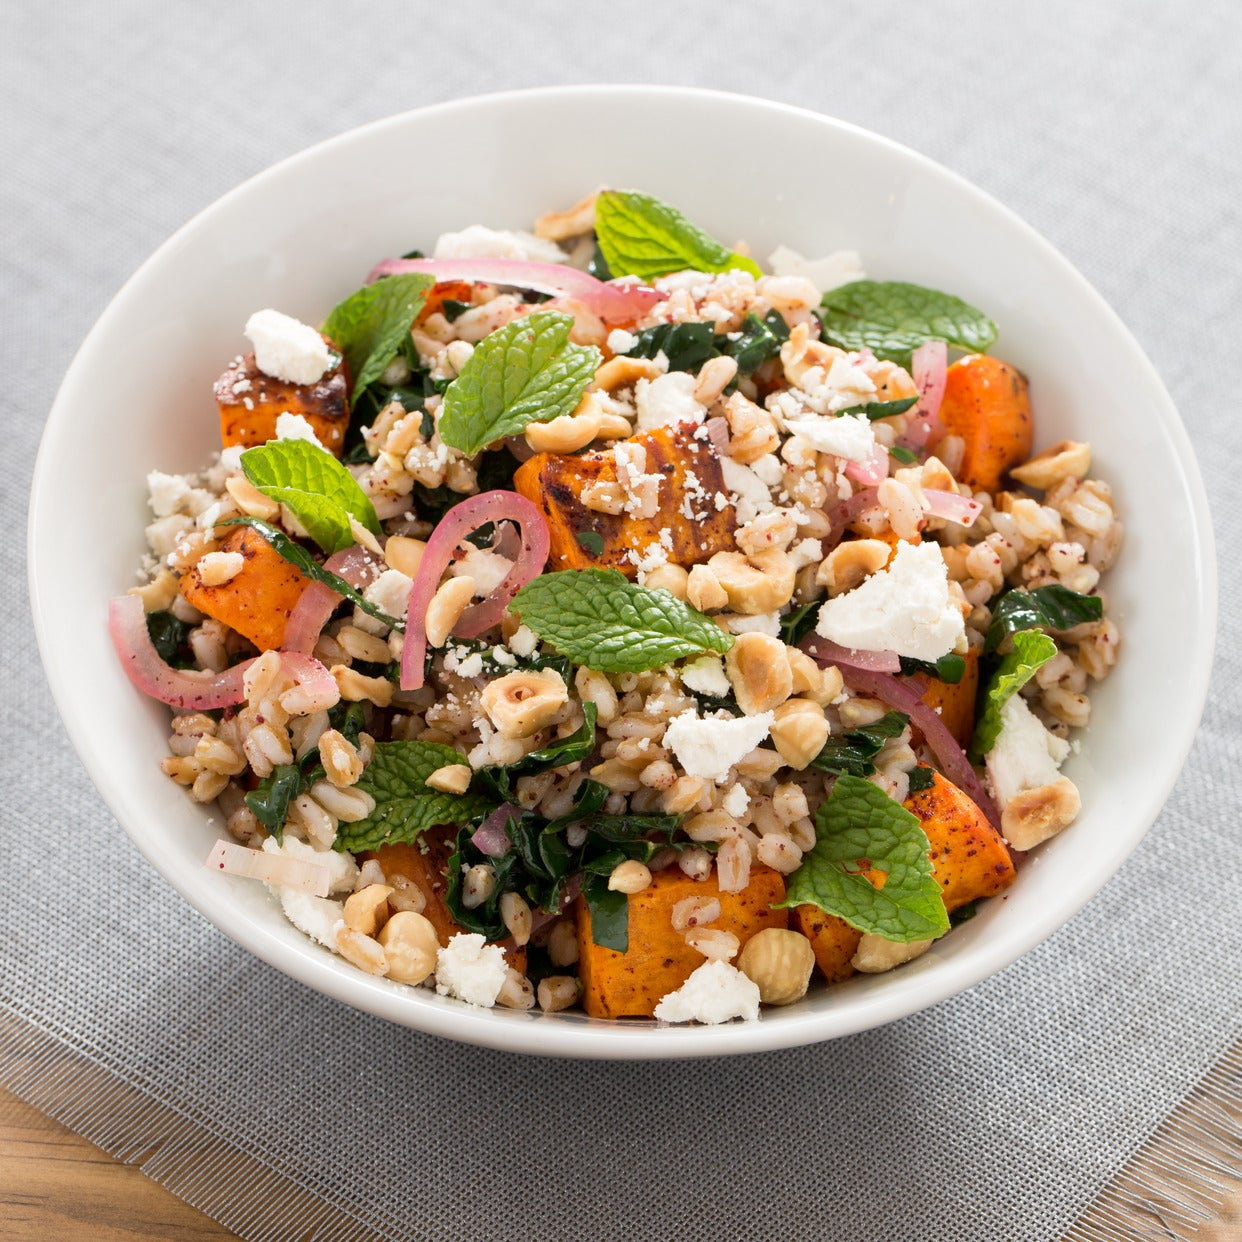 Apple, Farro and Bacon Salad with Warm Feta Cheese Apple, Farro and Bacon Salad with Warm Feta Cheese new picture